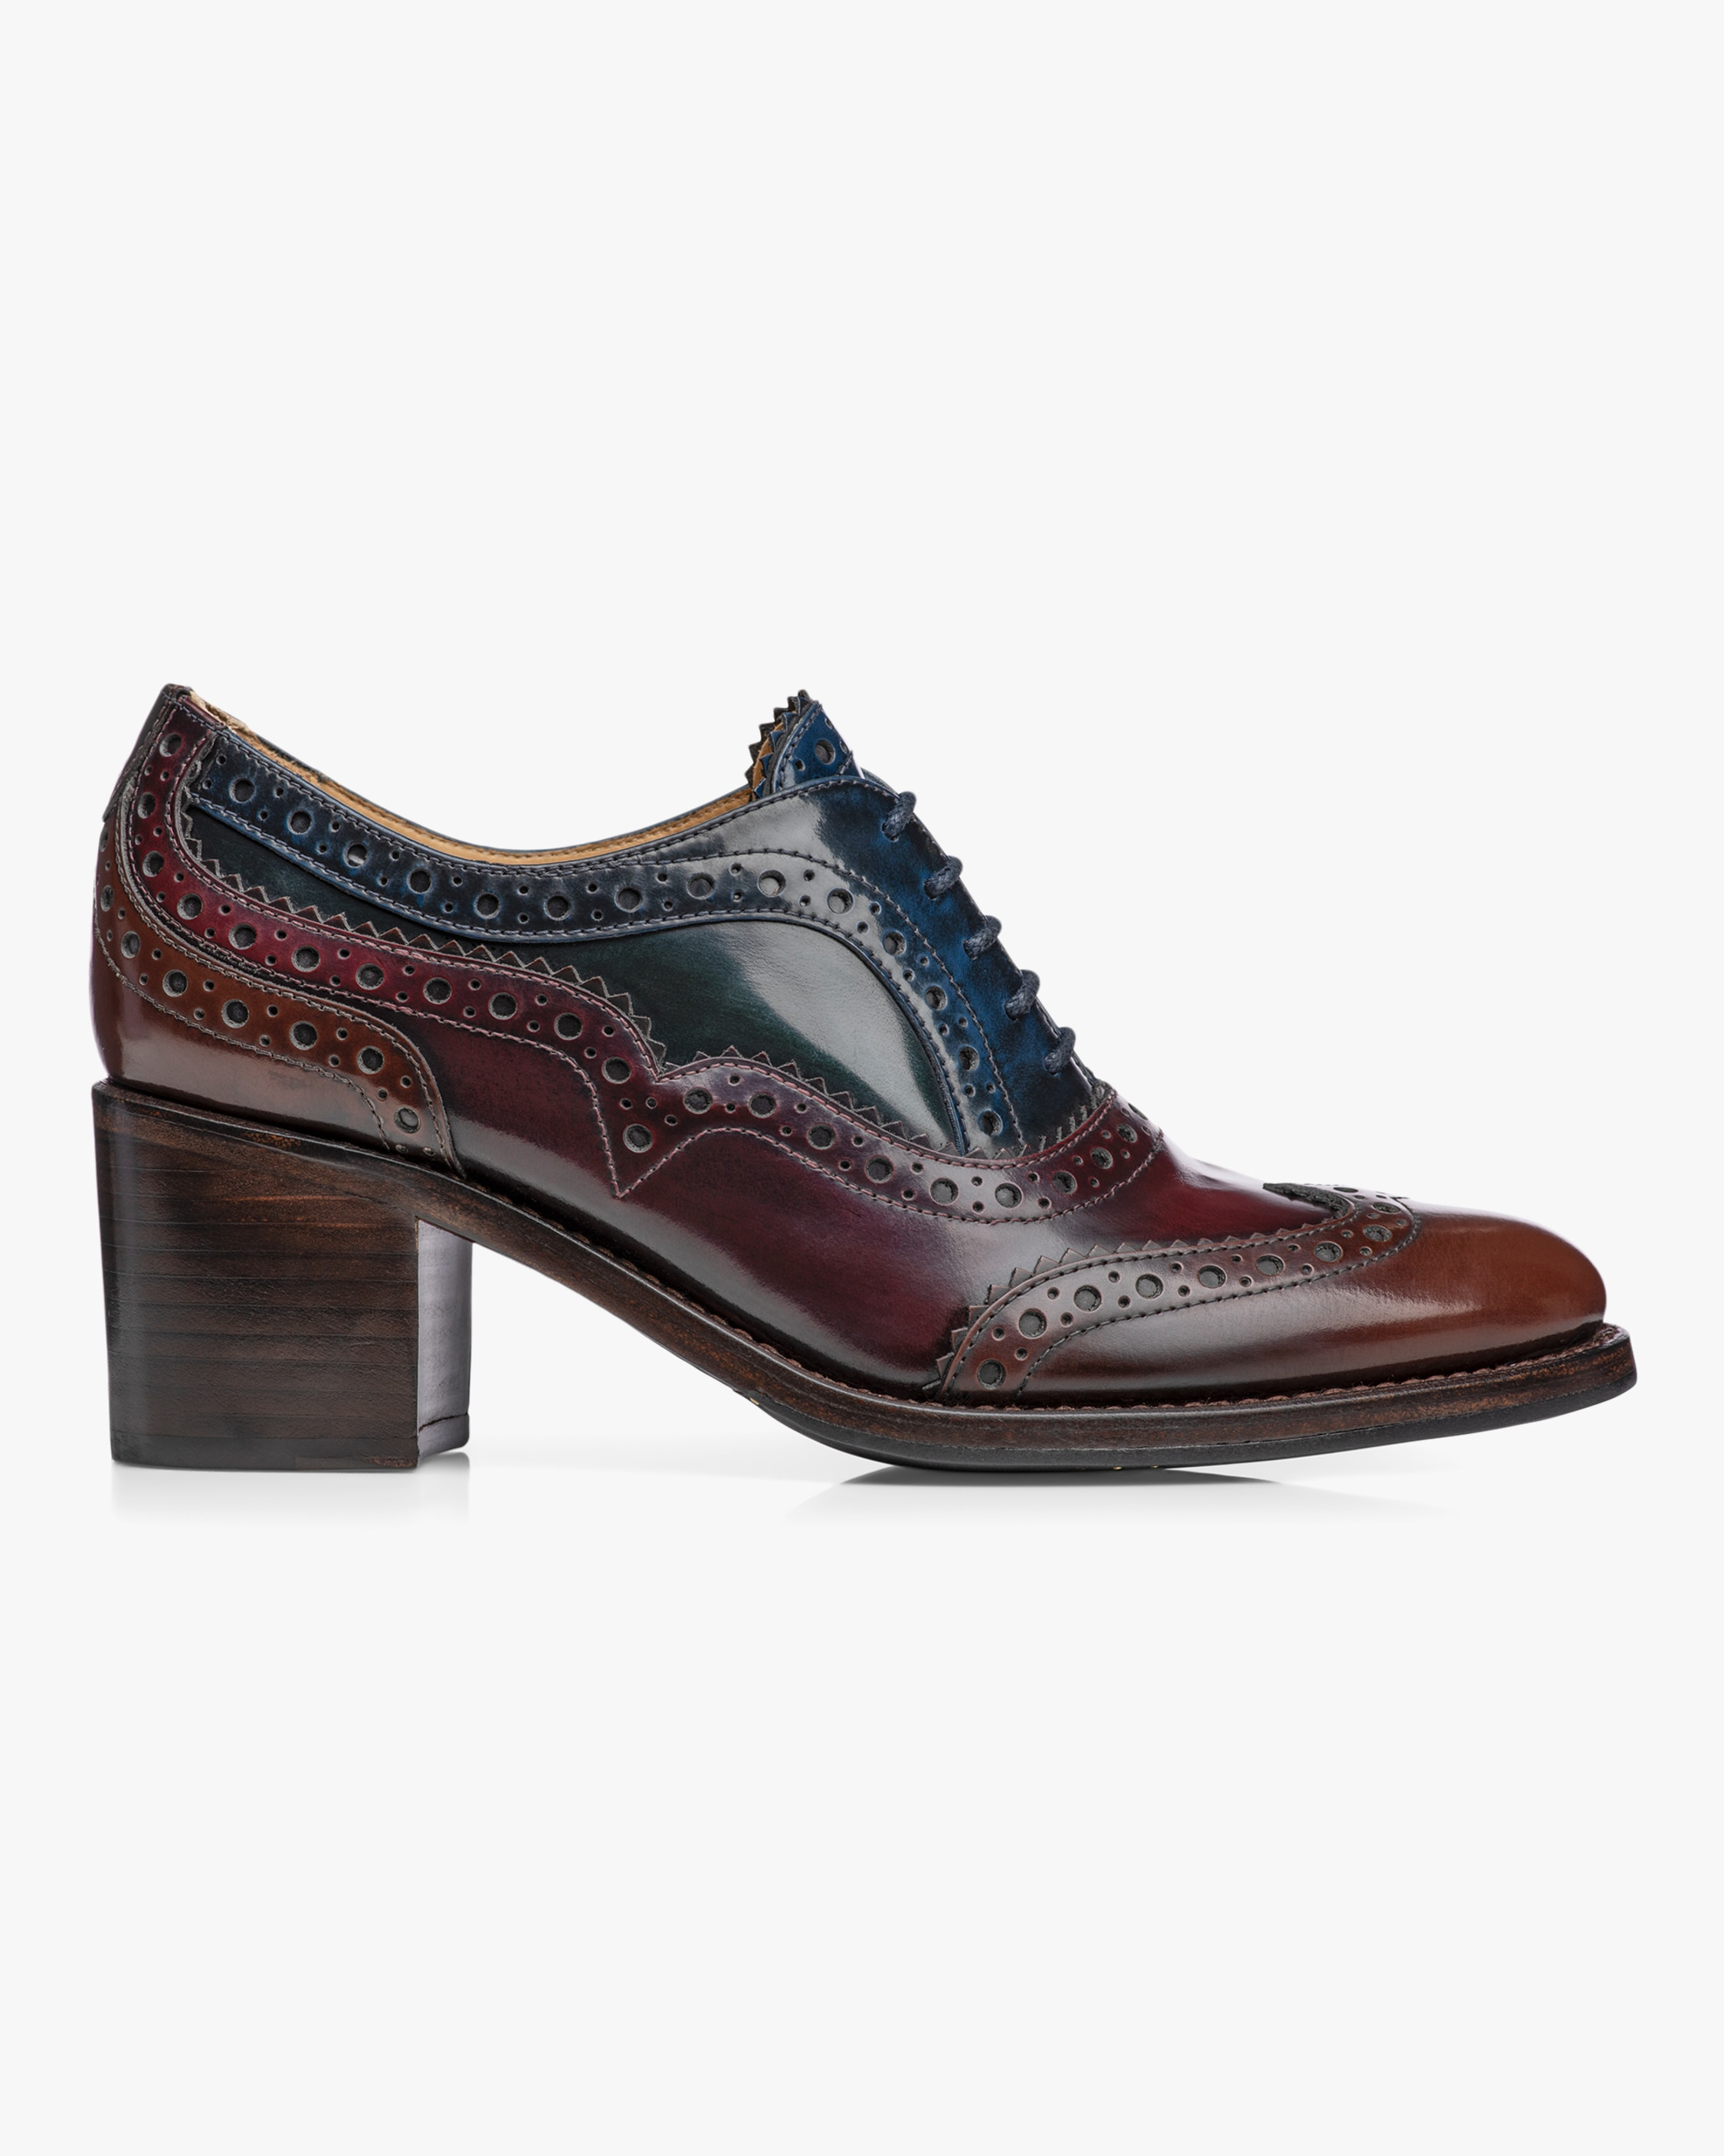 The Office of Angela Scott Mrs. Doubt Heeled Oxford 1